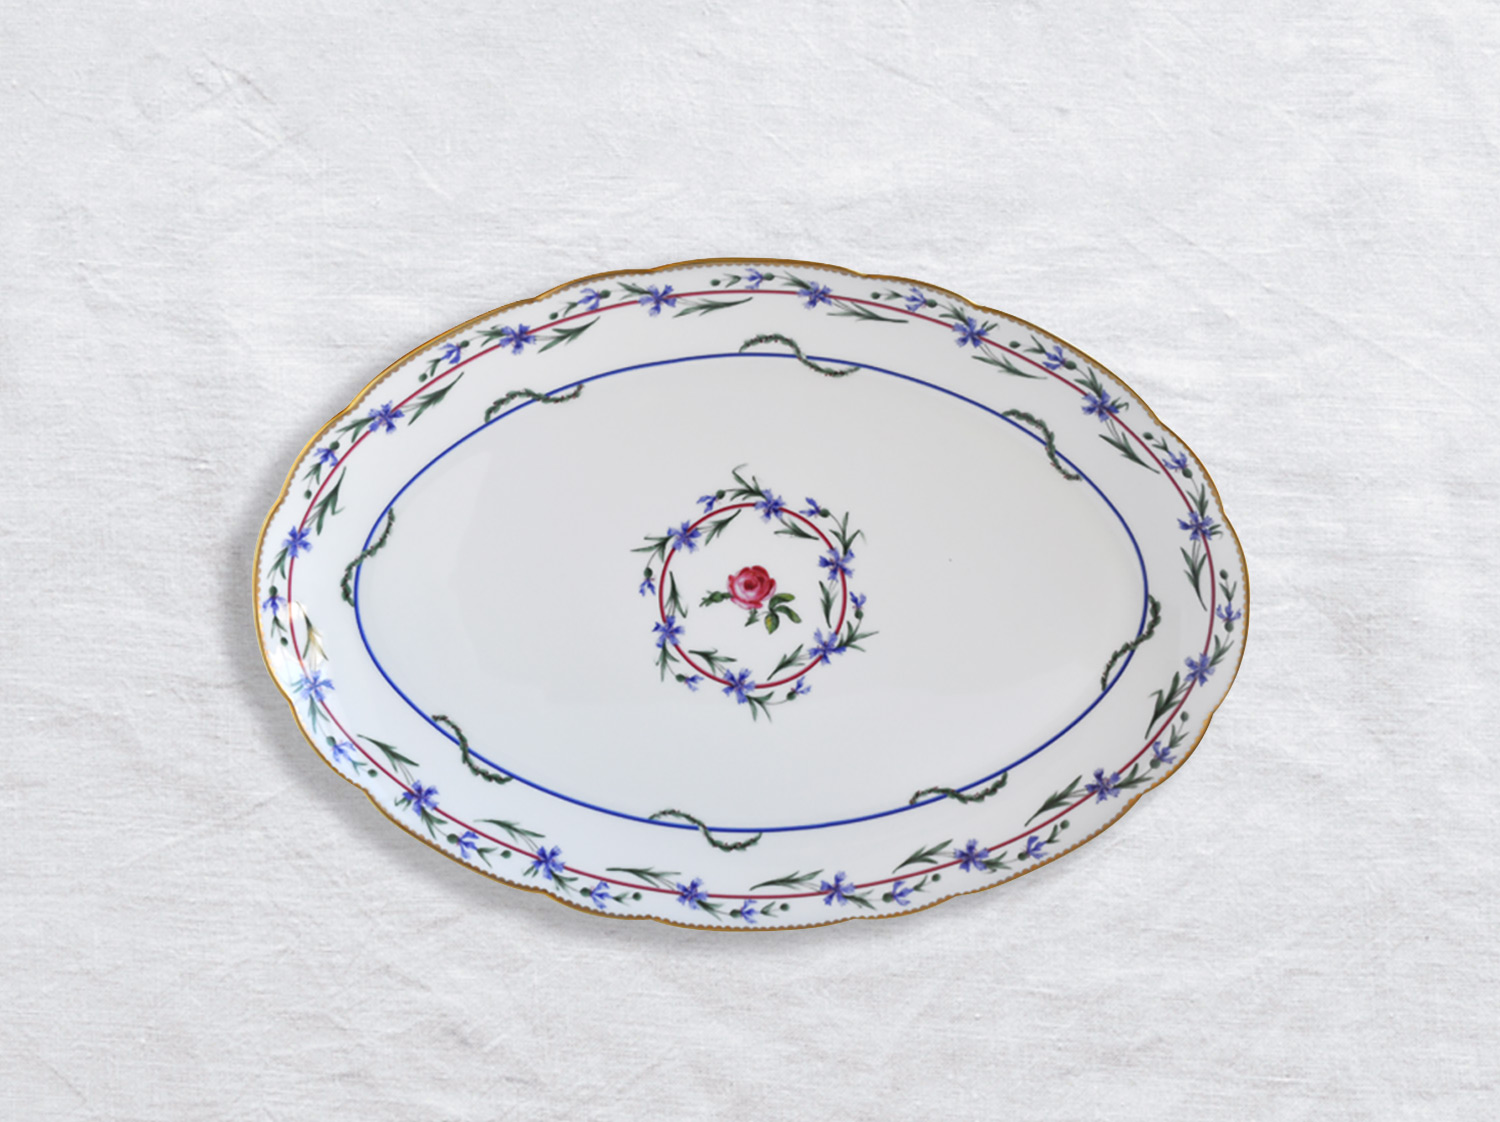 Plat ovale 38 cm en porcelaine de la collection Gobelet du roy Bernardaud